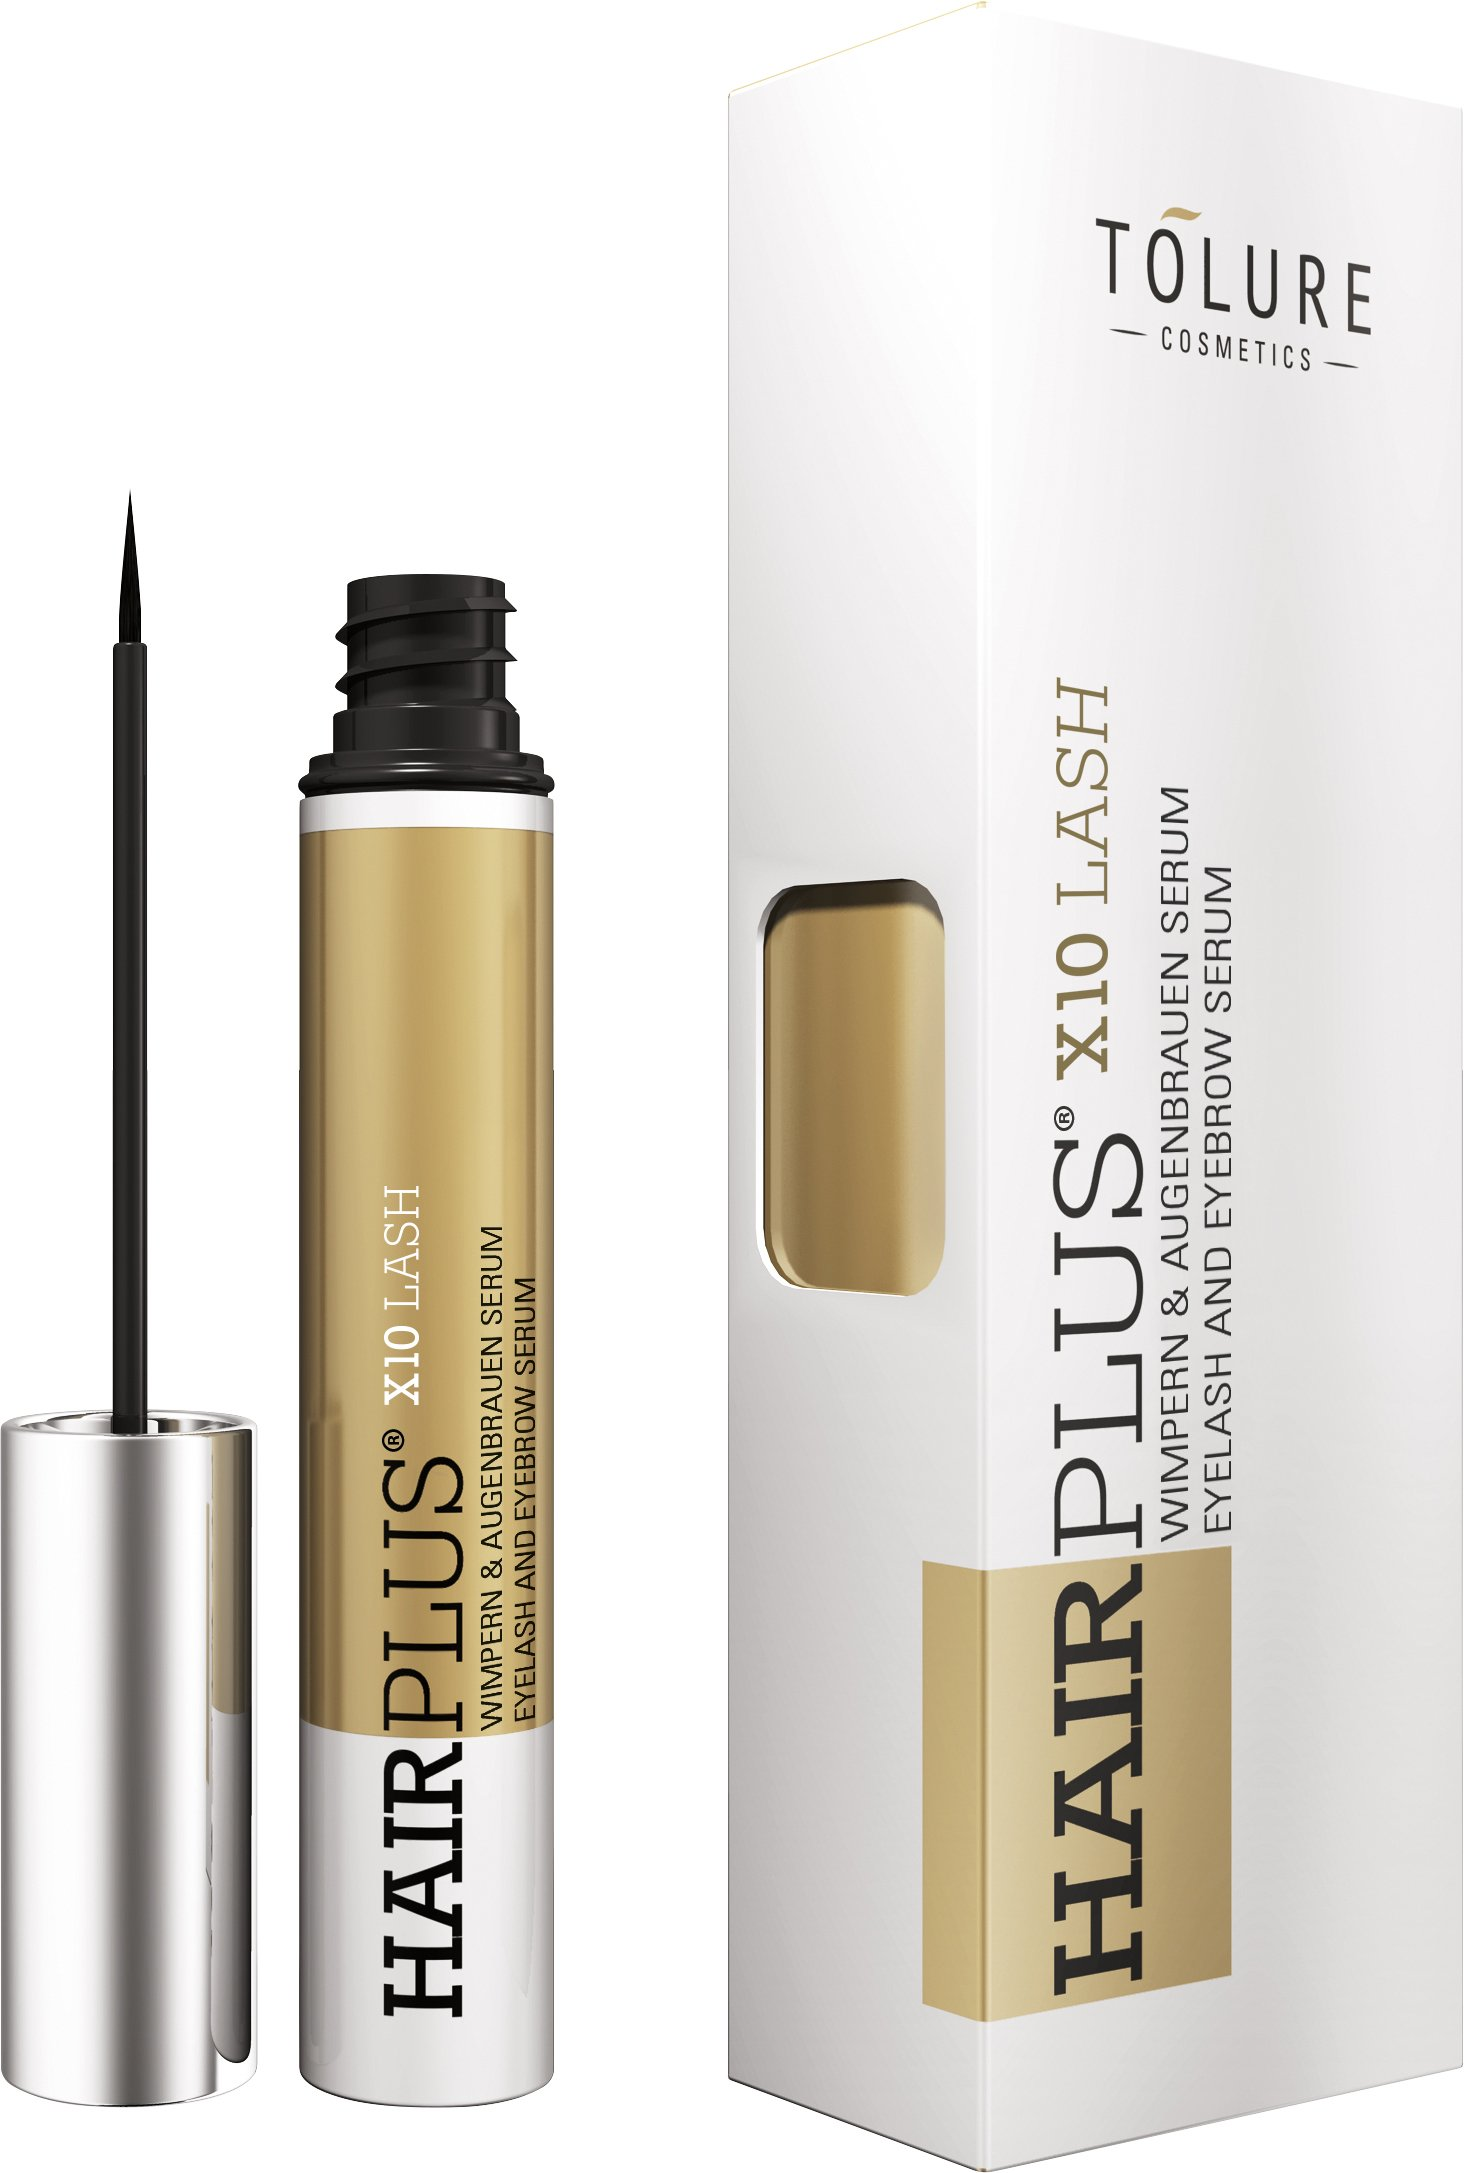 Tolure Cosmetics Hairplus X10Lash – Sérum para pestañas y cejas